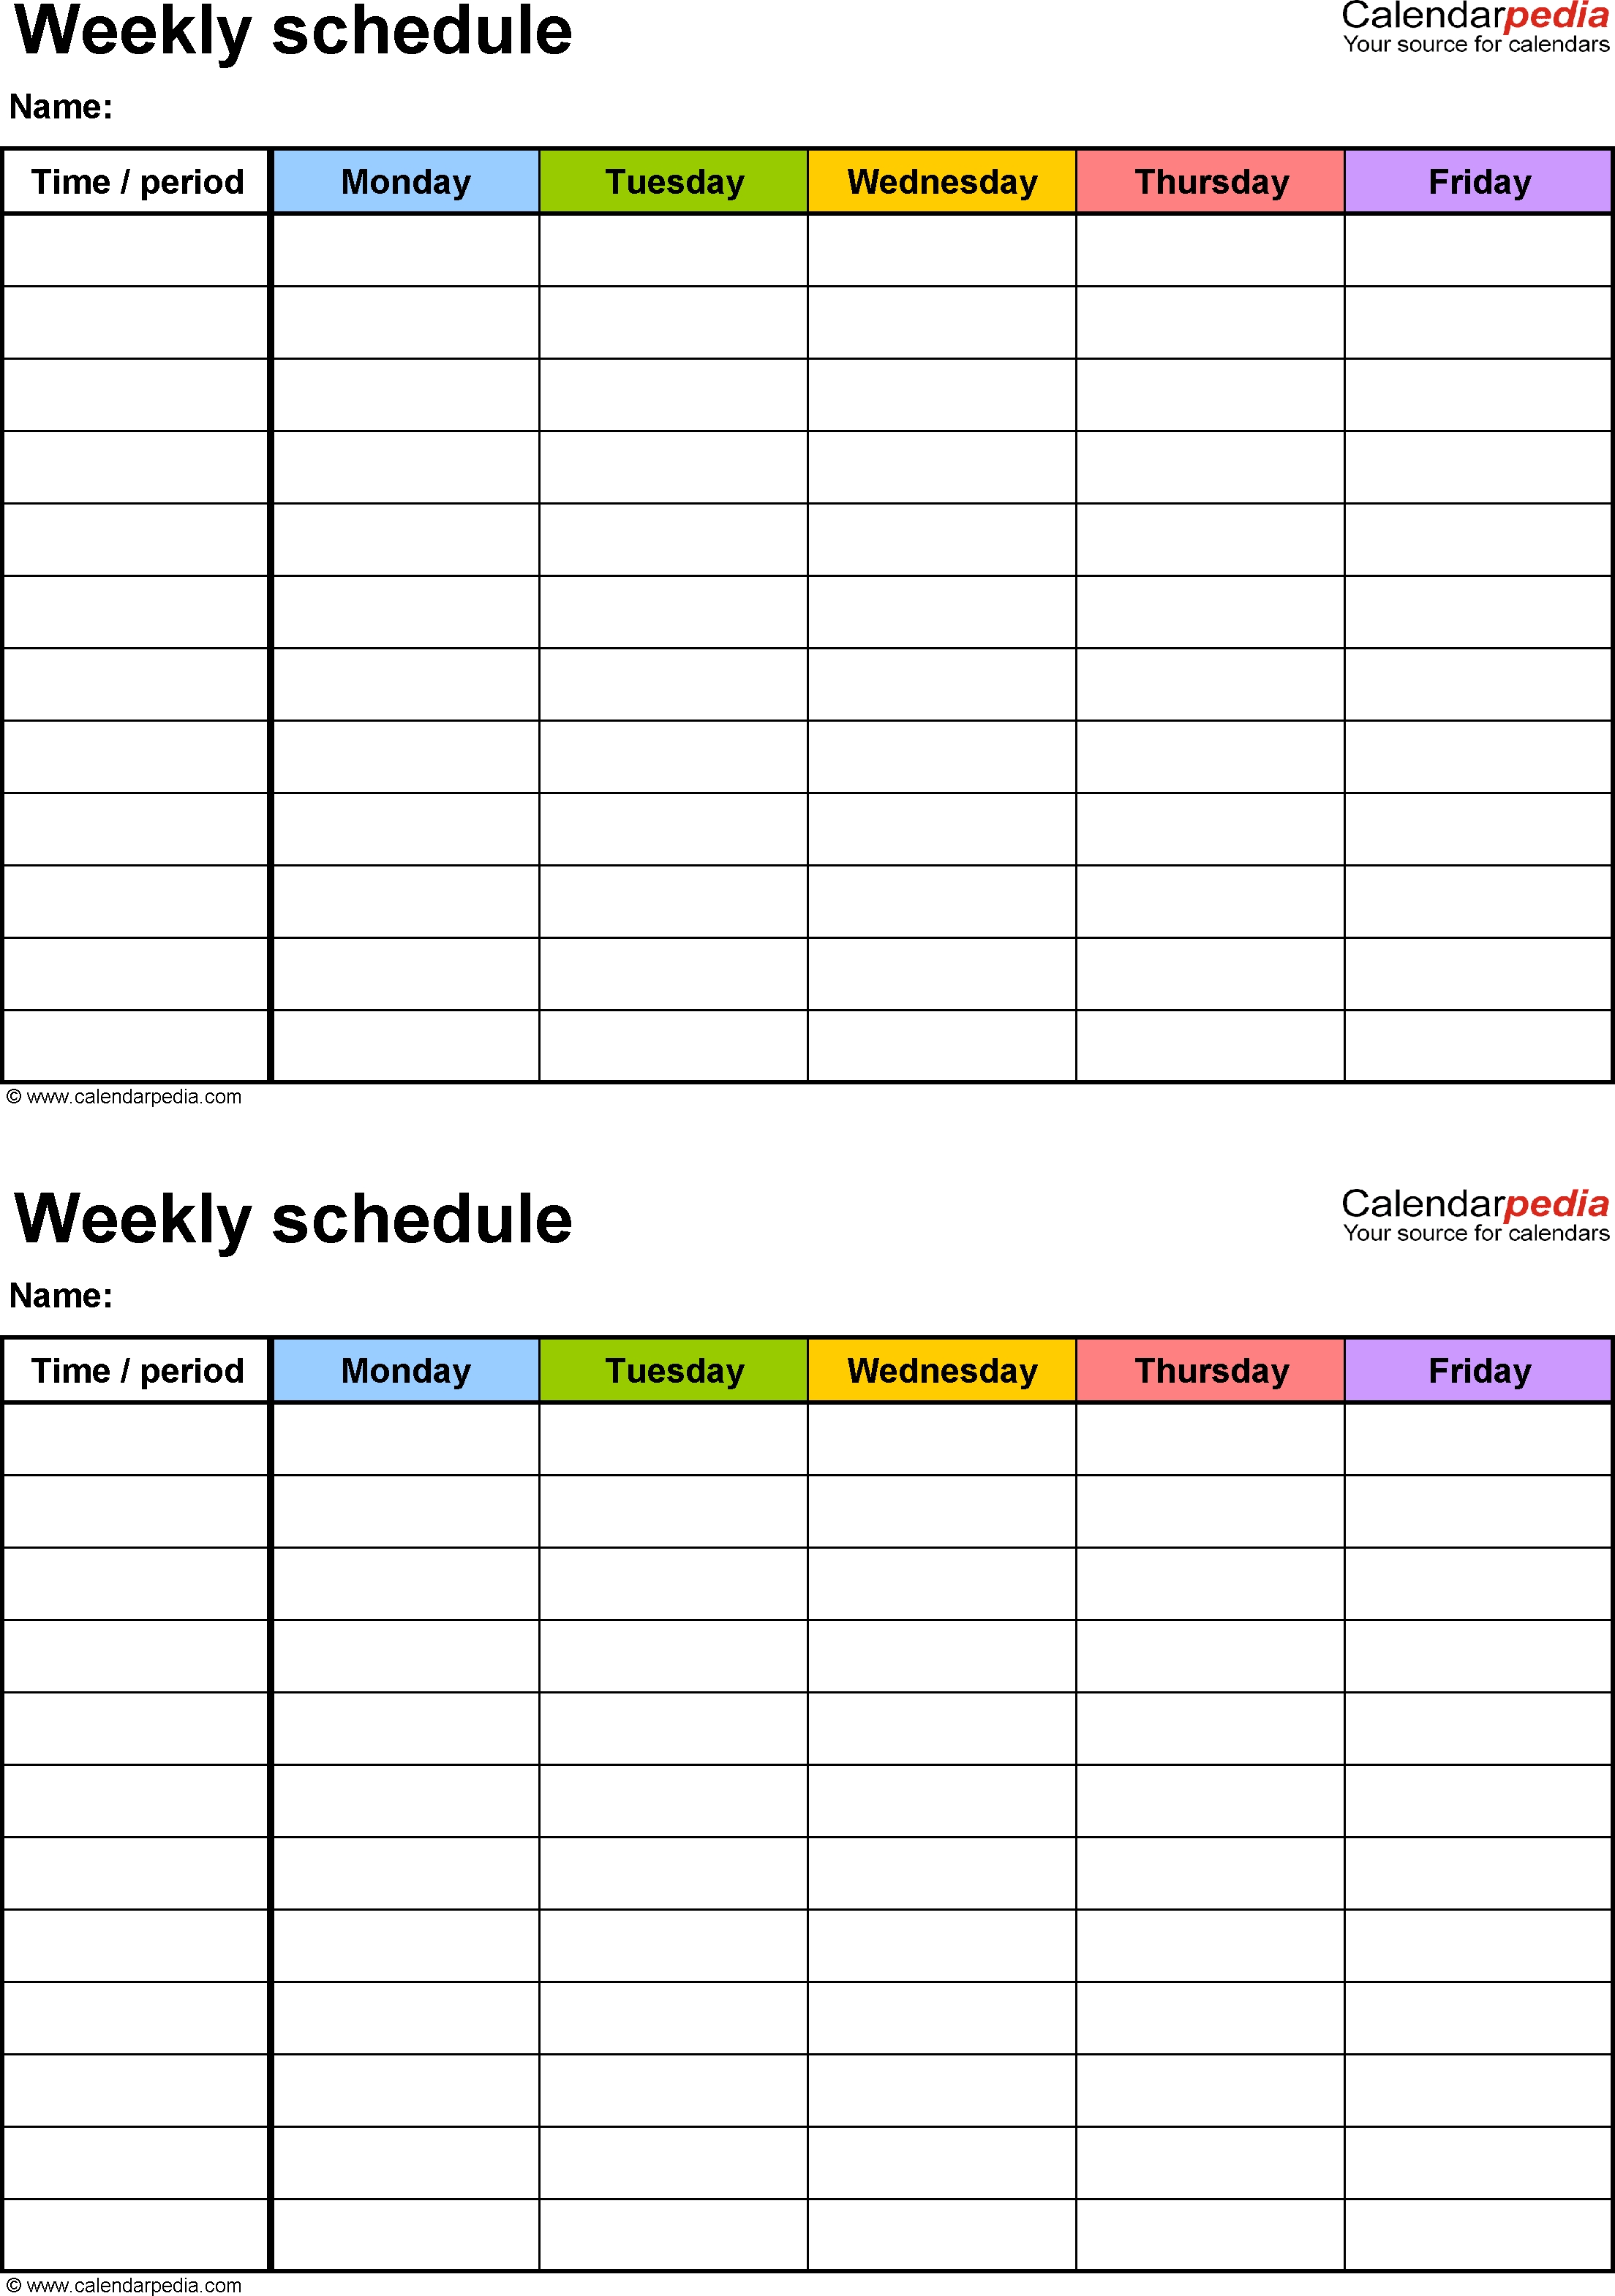 Free Weekly Schedule Templates For Word - 18 Templates  Week Schedule Template With Times